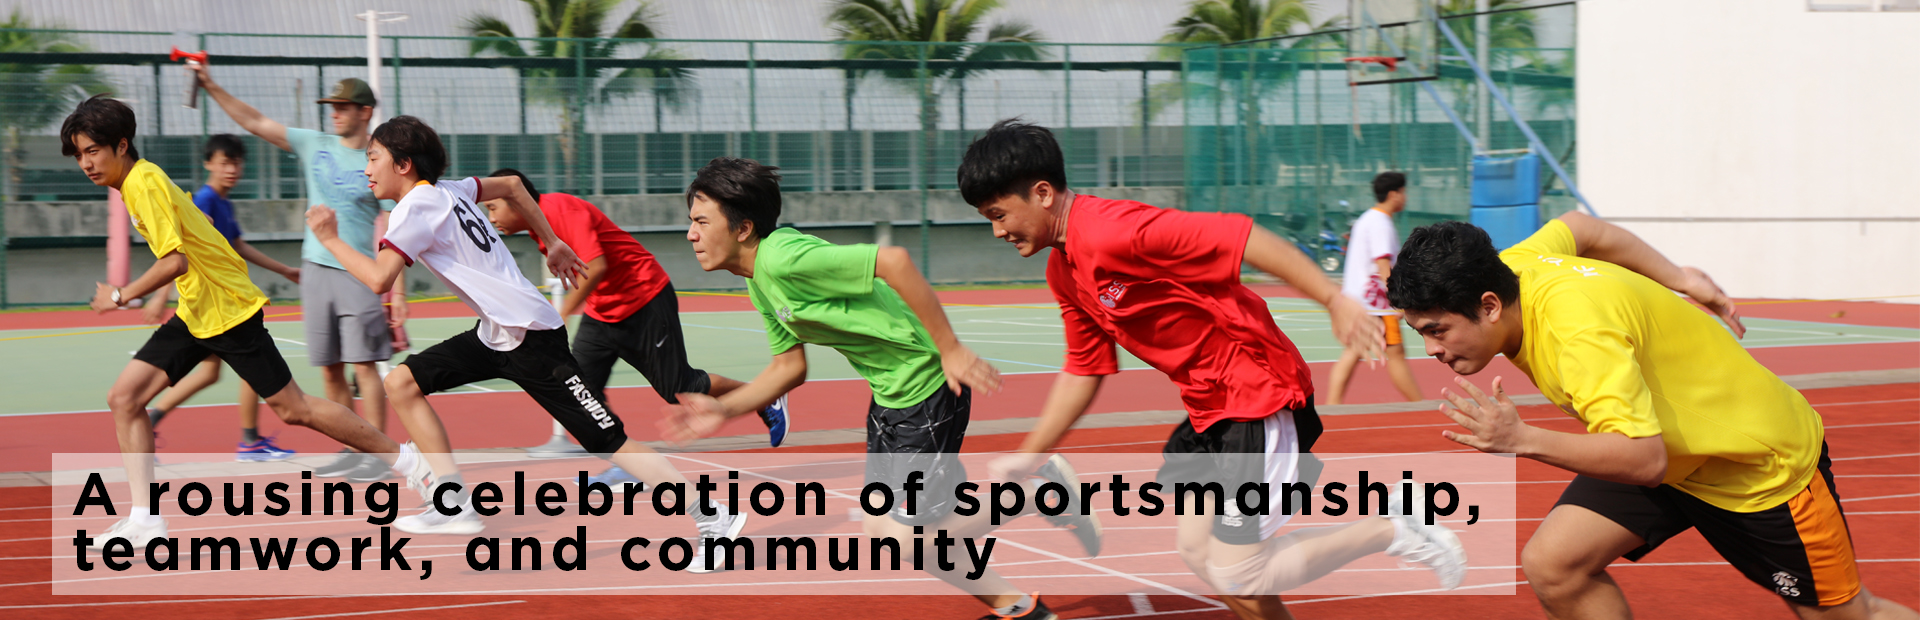 k-11-sports-day-banner